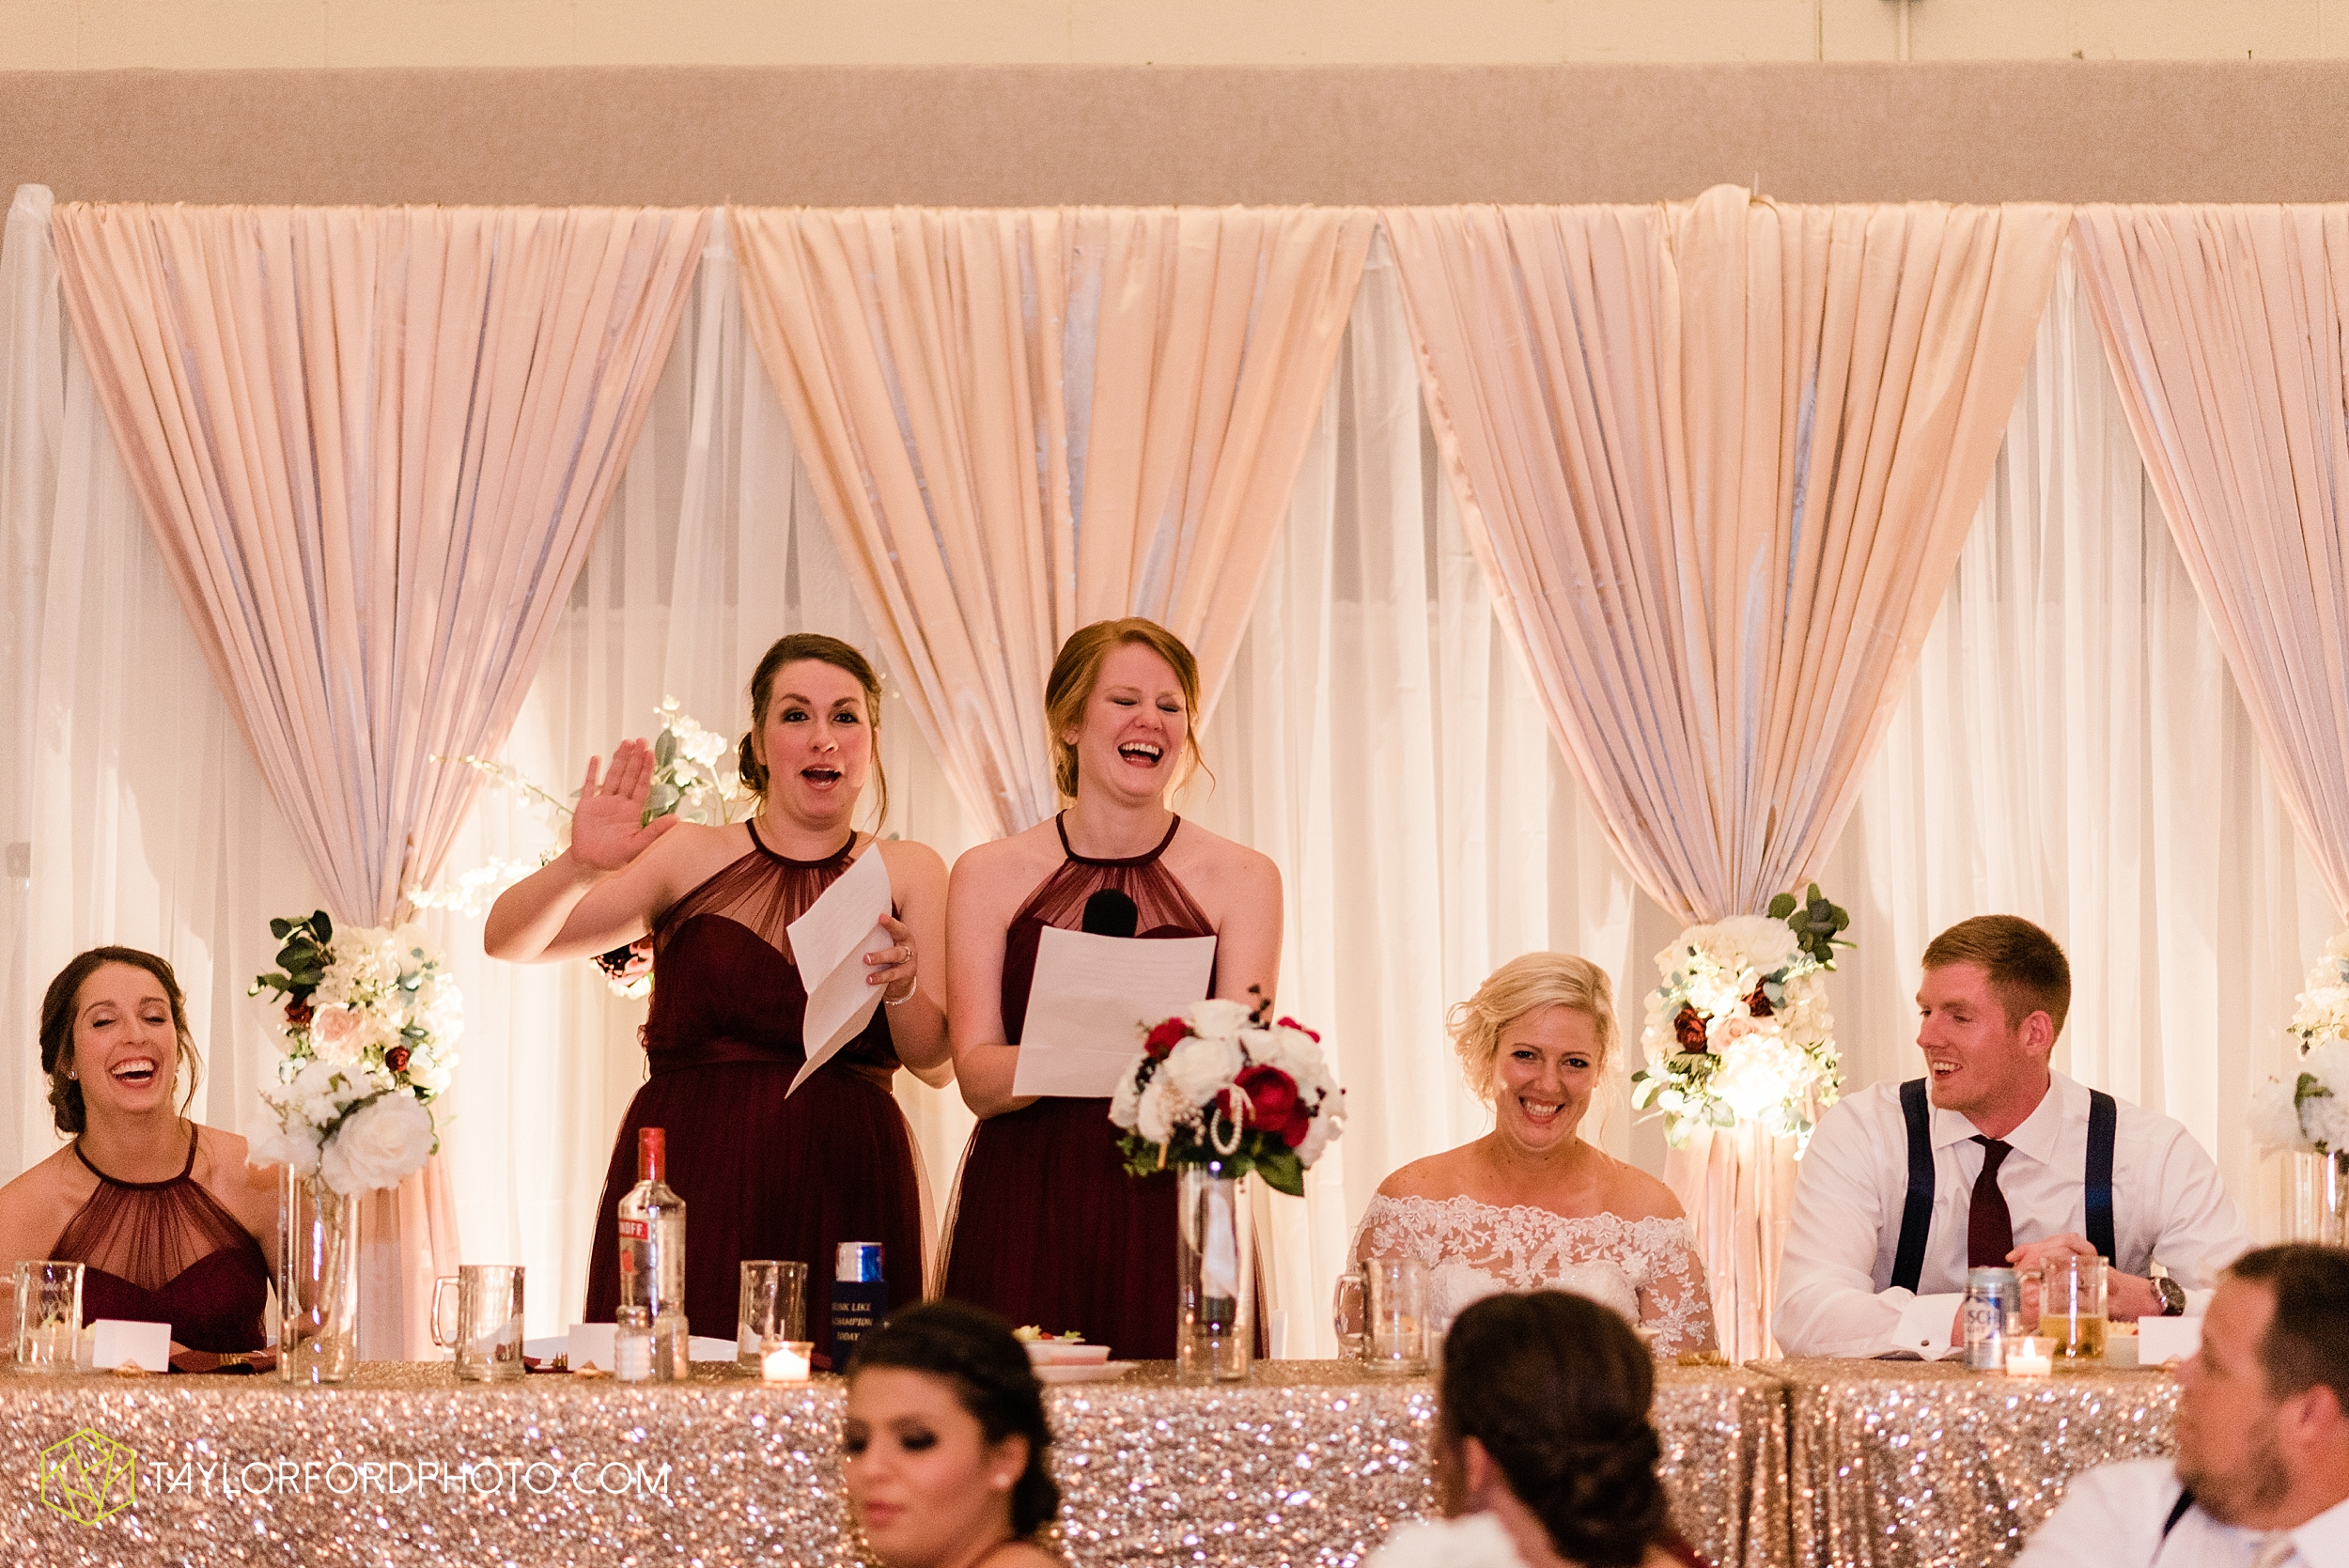 gayle-rayman-mike-steele-ottoville-ohio-wedding-immaculate-conception-parish-center-wedding-sycamore-lake-winery-wannamachers-photographer-taylor-ford-photography_0435.jpg